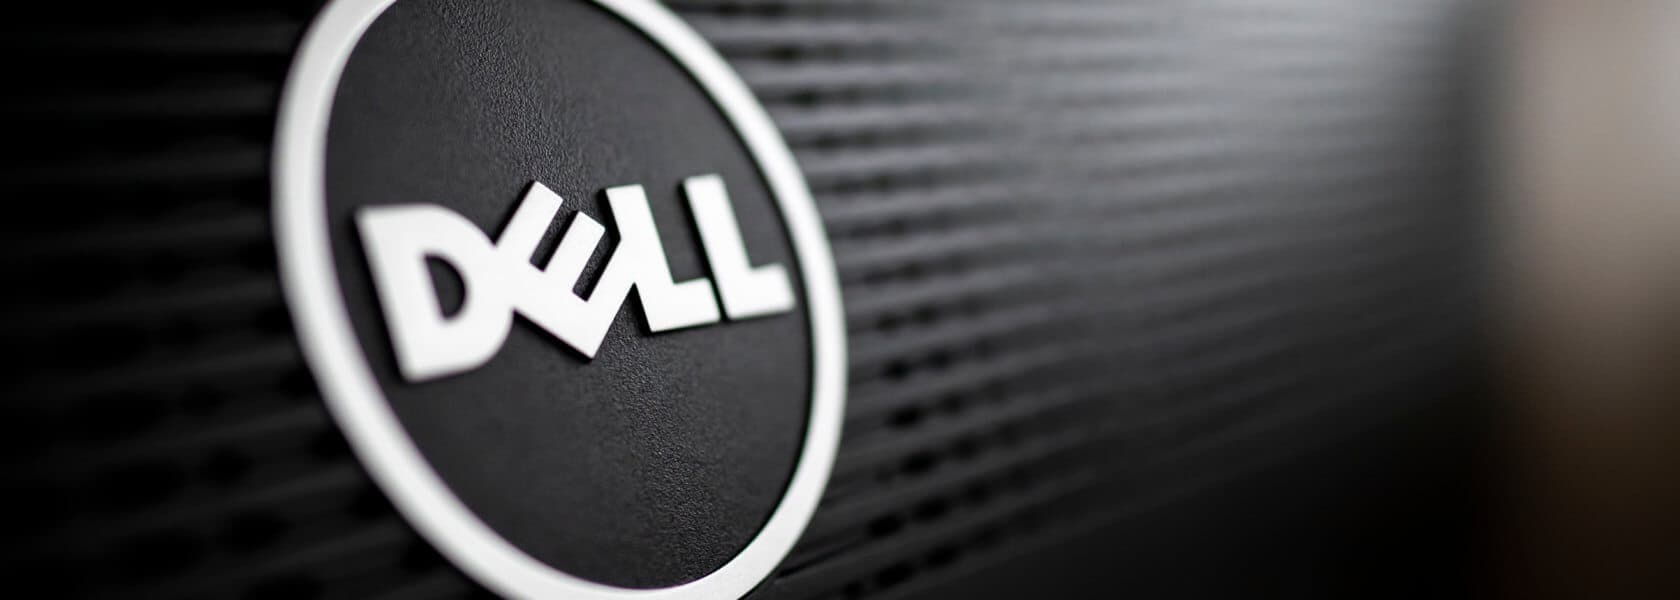 Dell Scholars Programme For American High School Students